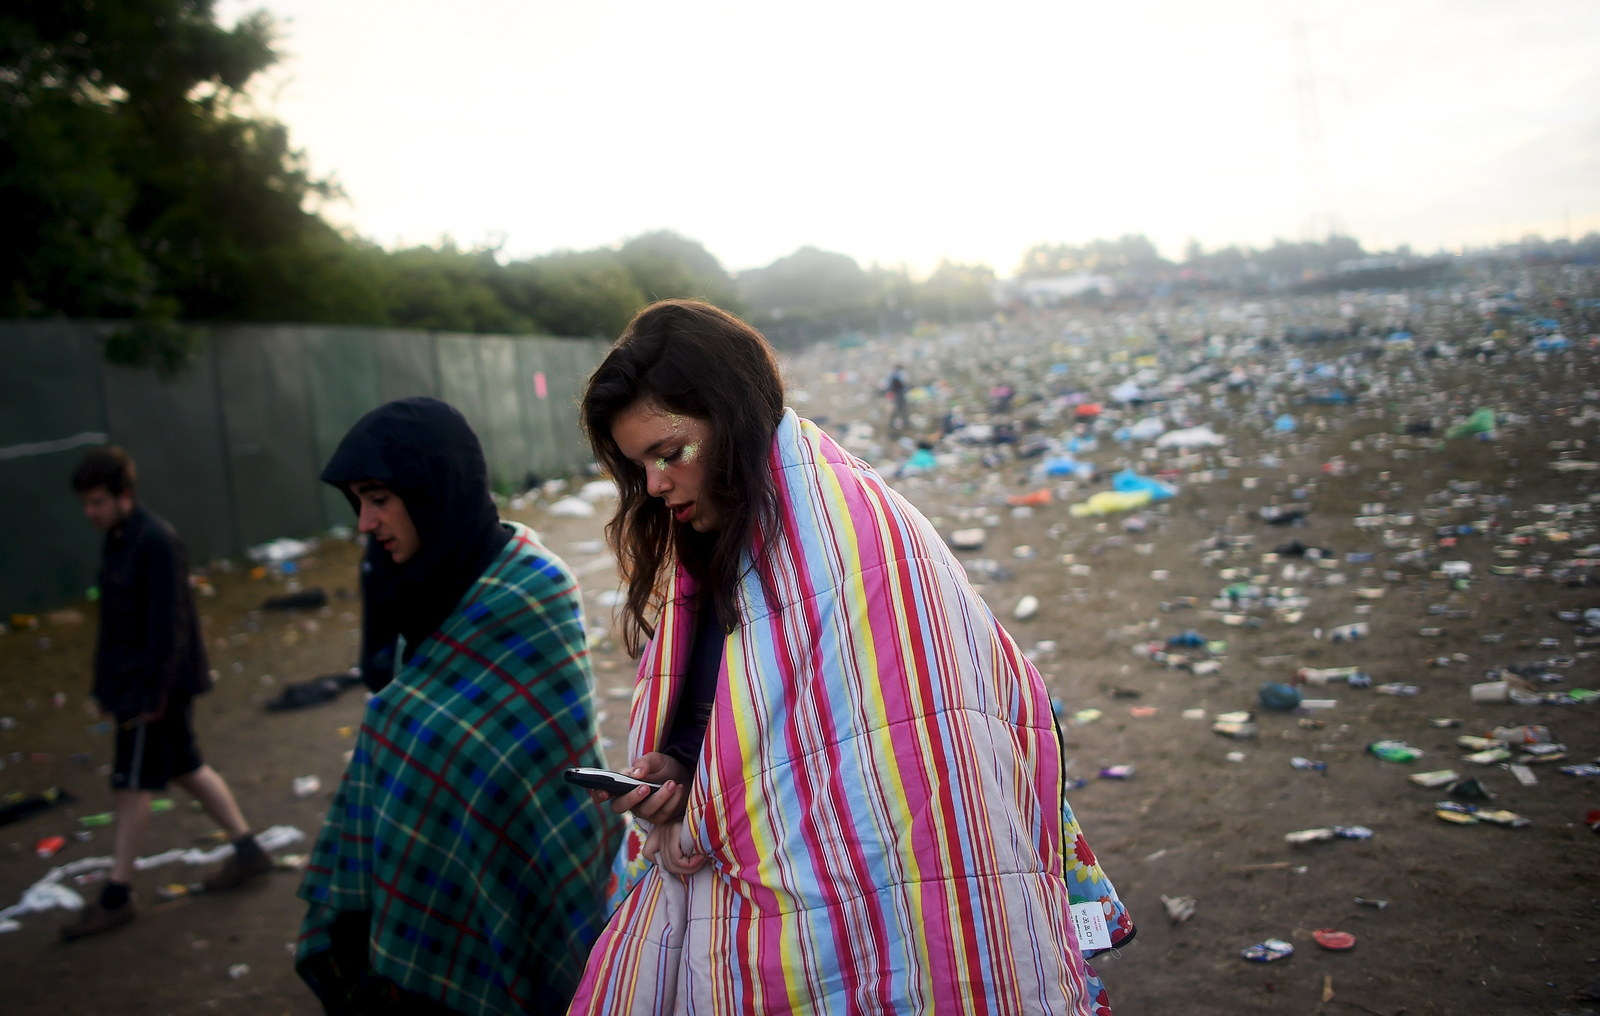 glastonbury4